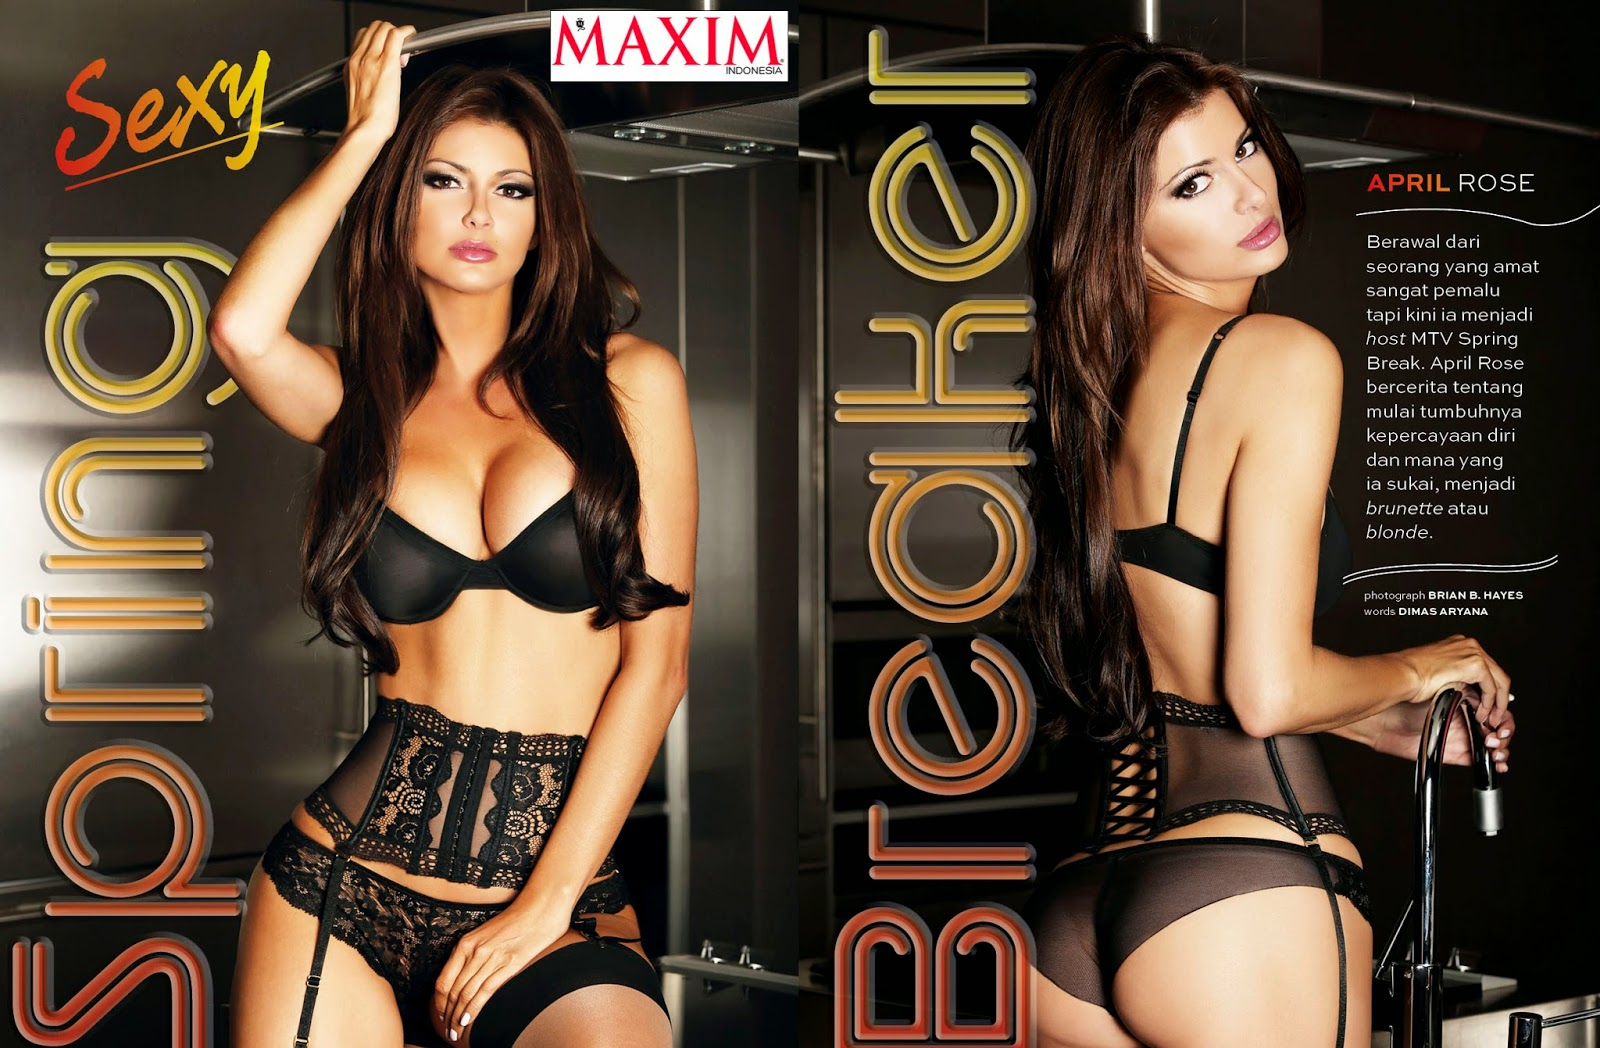 Maxim Magazine Starts May Off With April Rose